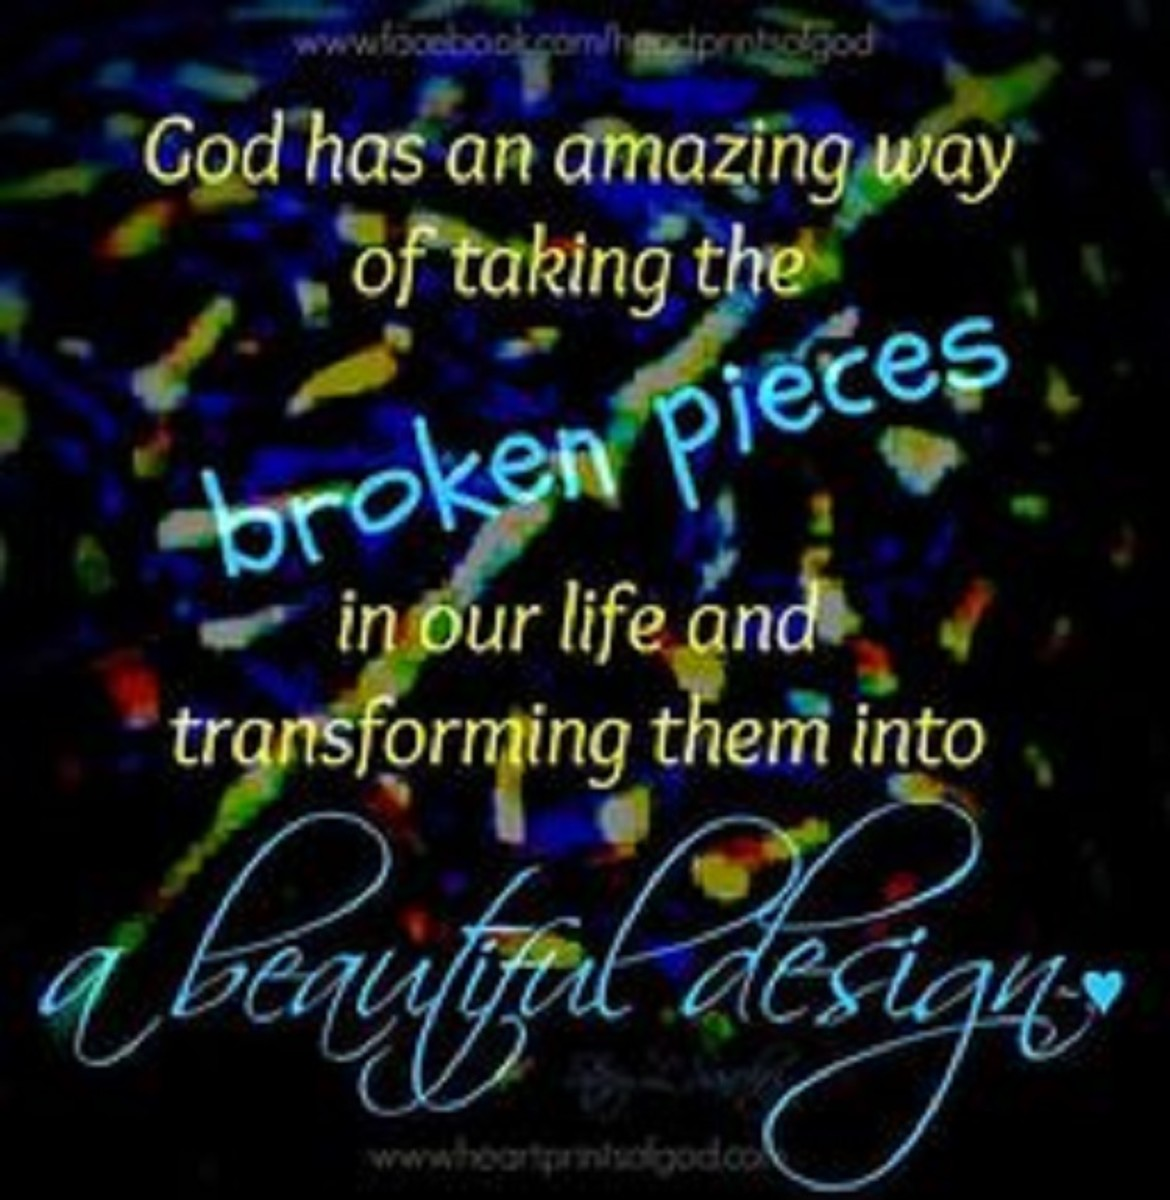 httppammorrishubpagescomhubbroken-things-can-become-blessed-things-if-we-let-god-do-the-mending